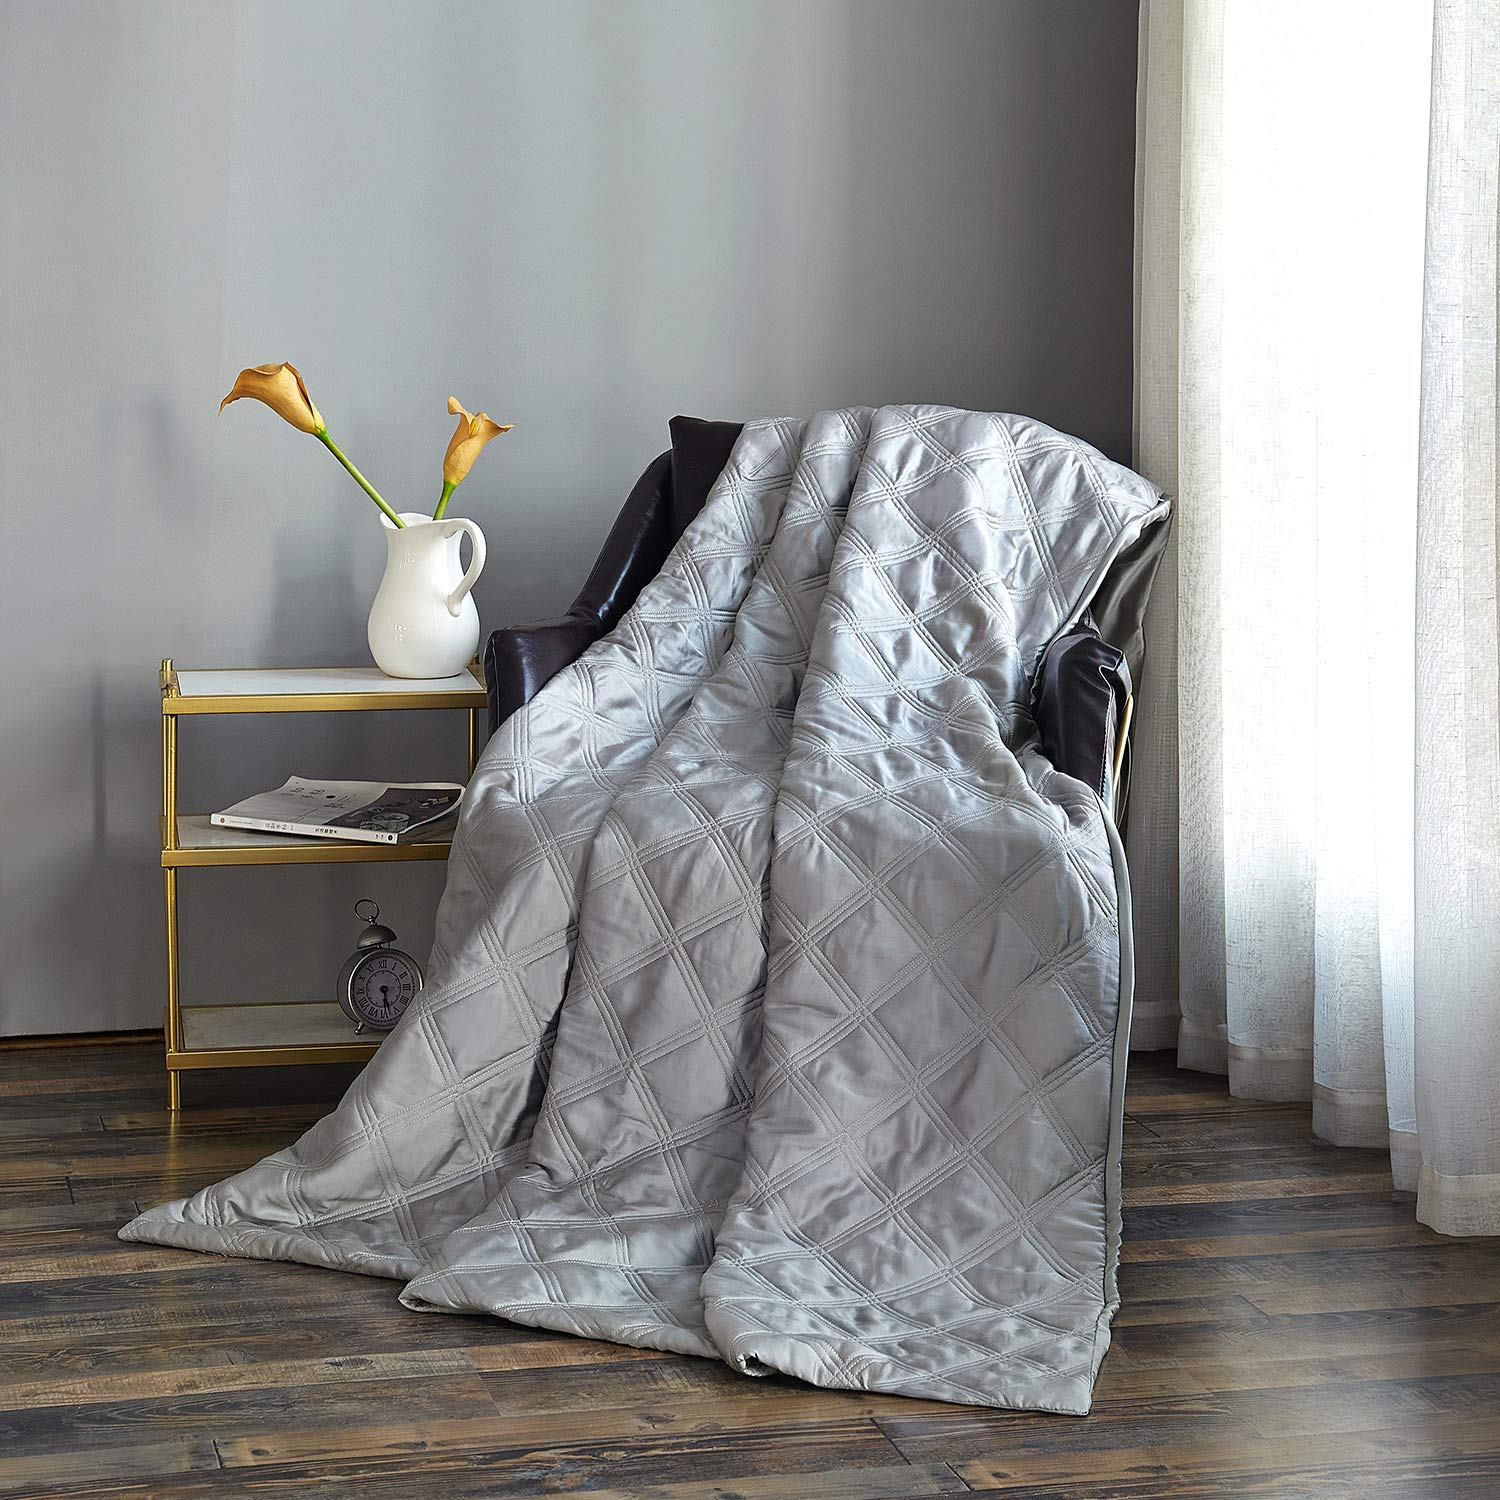 OMYSTYLE Cooling Weighted Blanket Duvet Cover 36x48Inches-100/% Tencel Reversible Weighted Blanket Cover with Zipper Closure,8 Ties-Light Grey